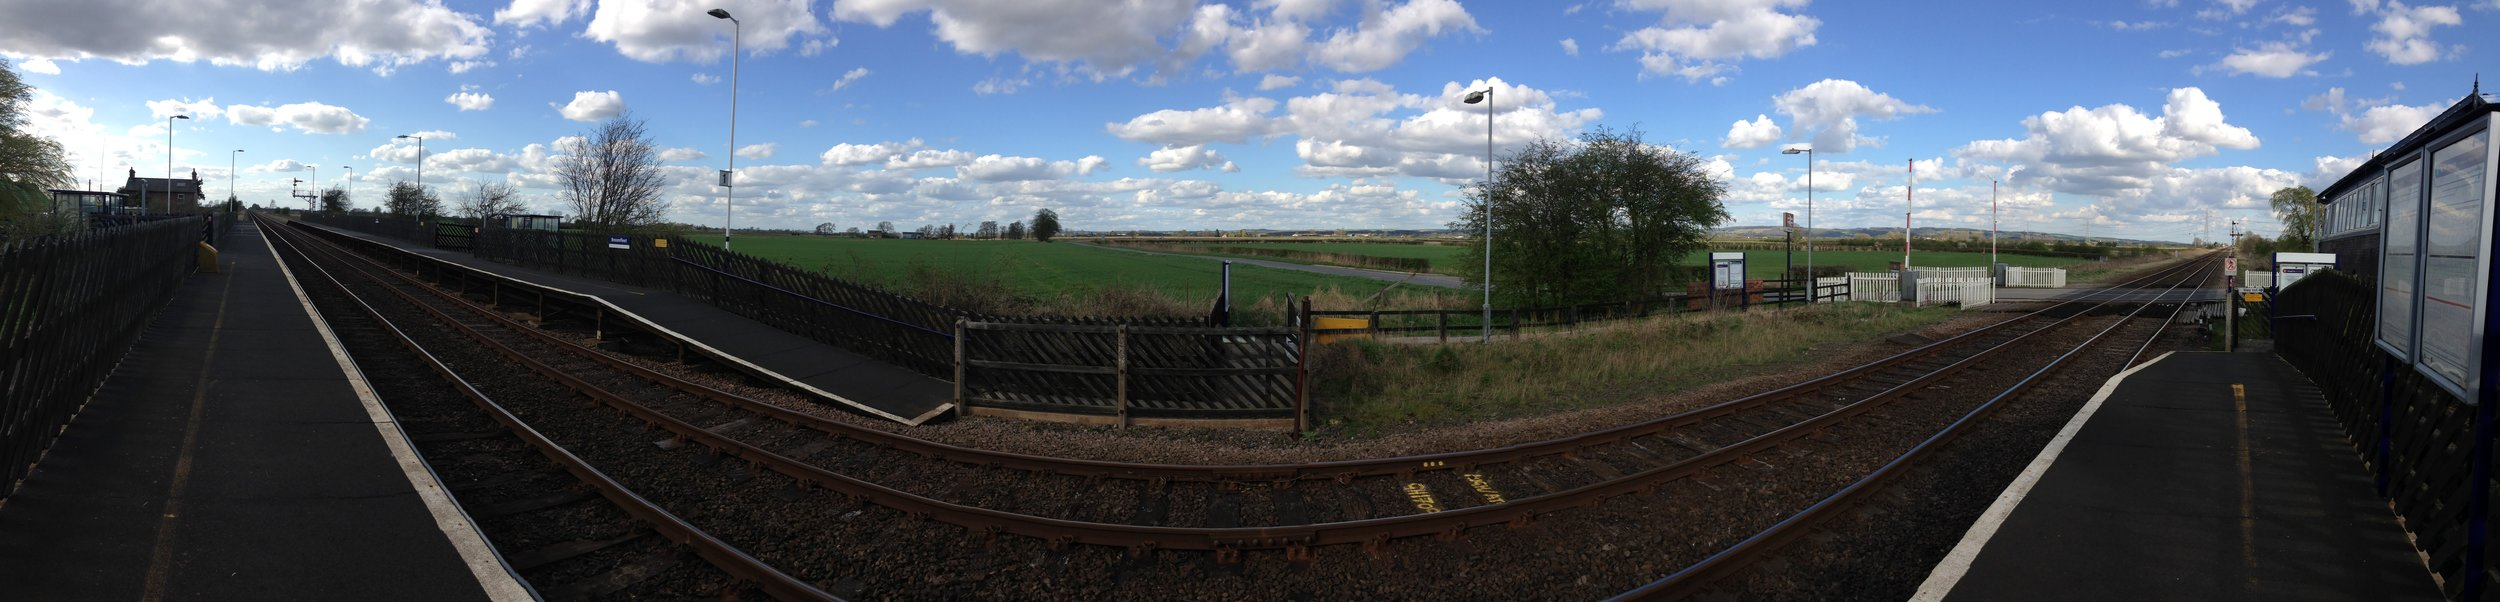 Broomfleet Station:  Just out of shot, the only train of the day...